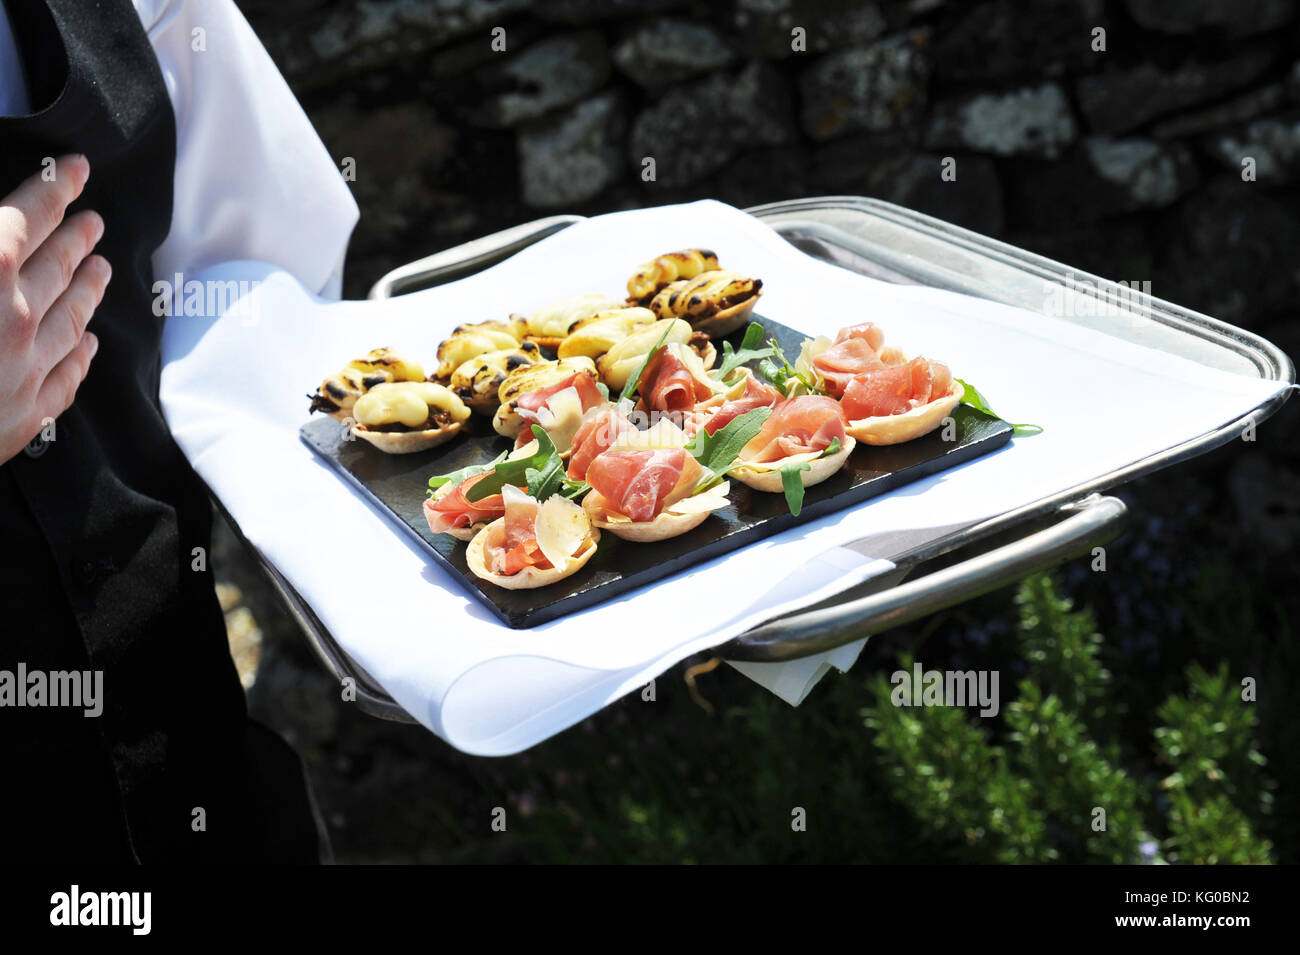 Tray of canapes held by a waiter at a wedding - Stock Image